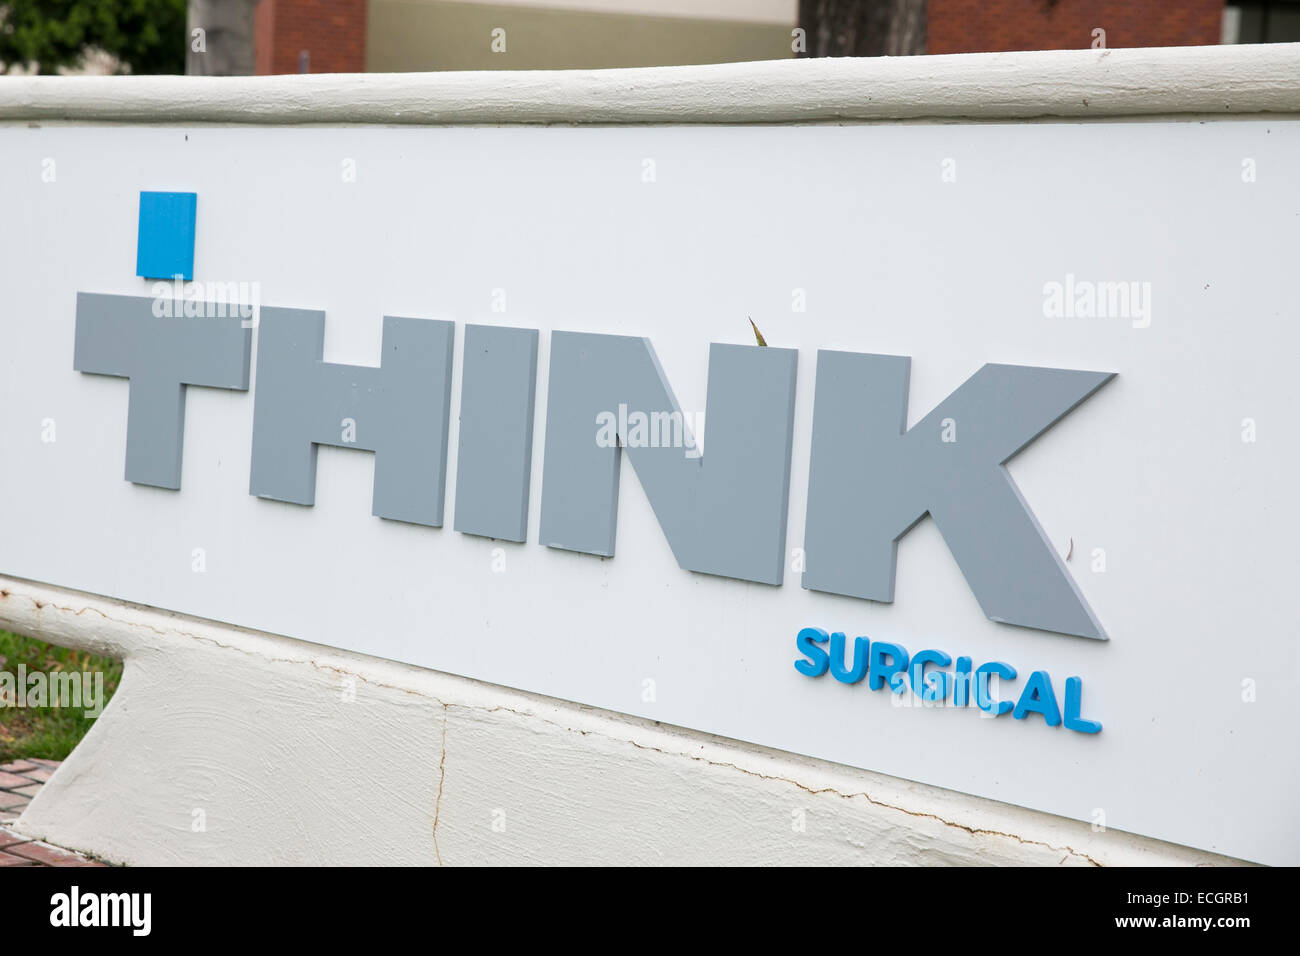 The headquarters of Think Surgical. - Stock Image